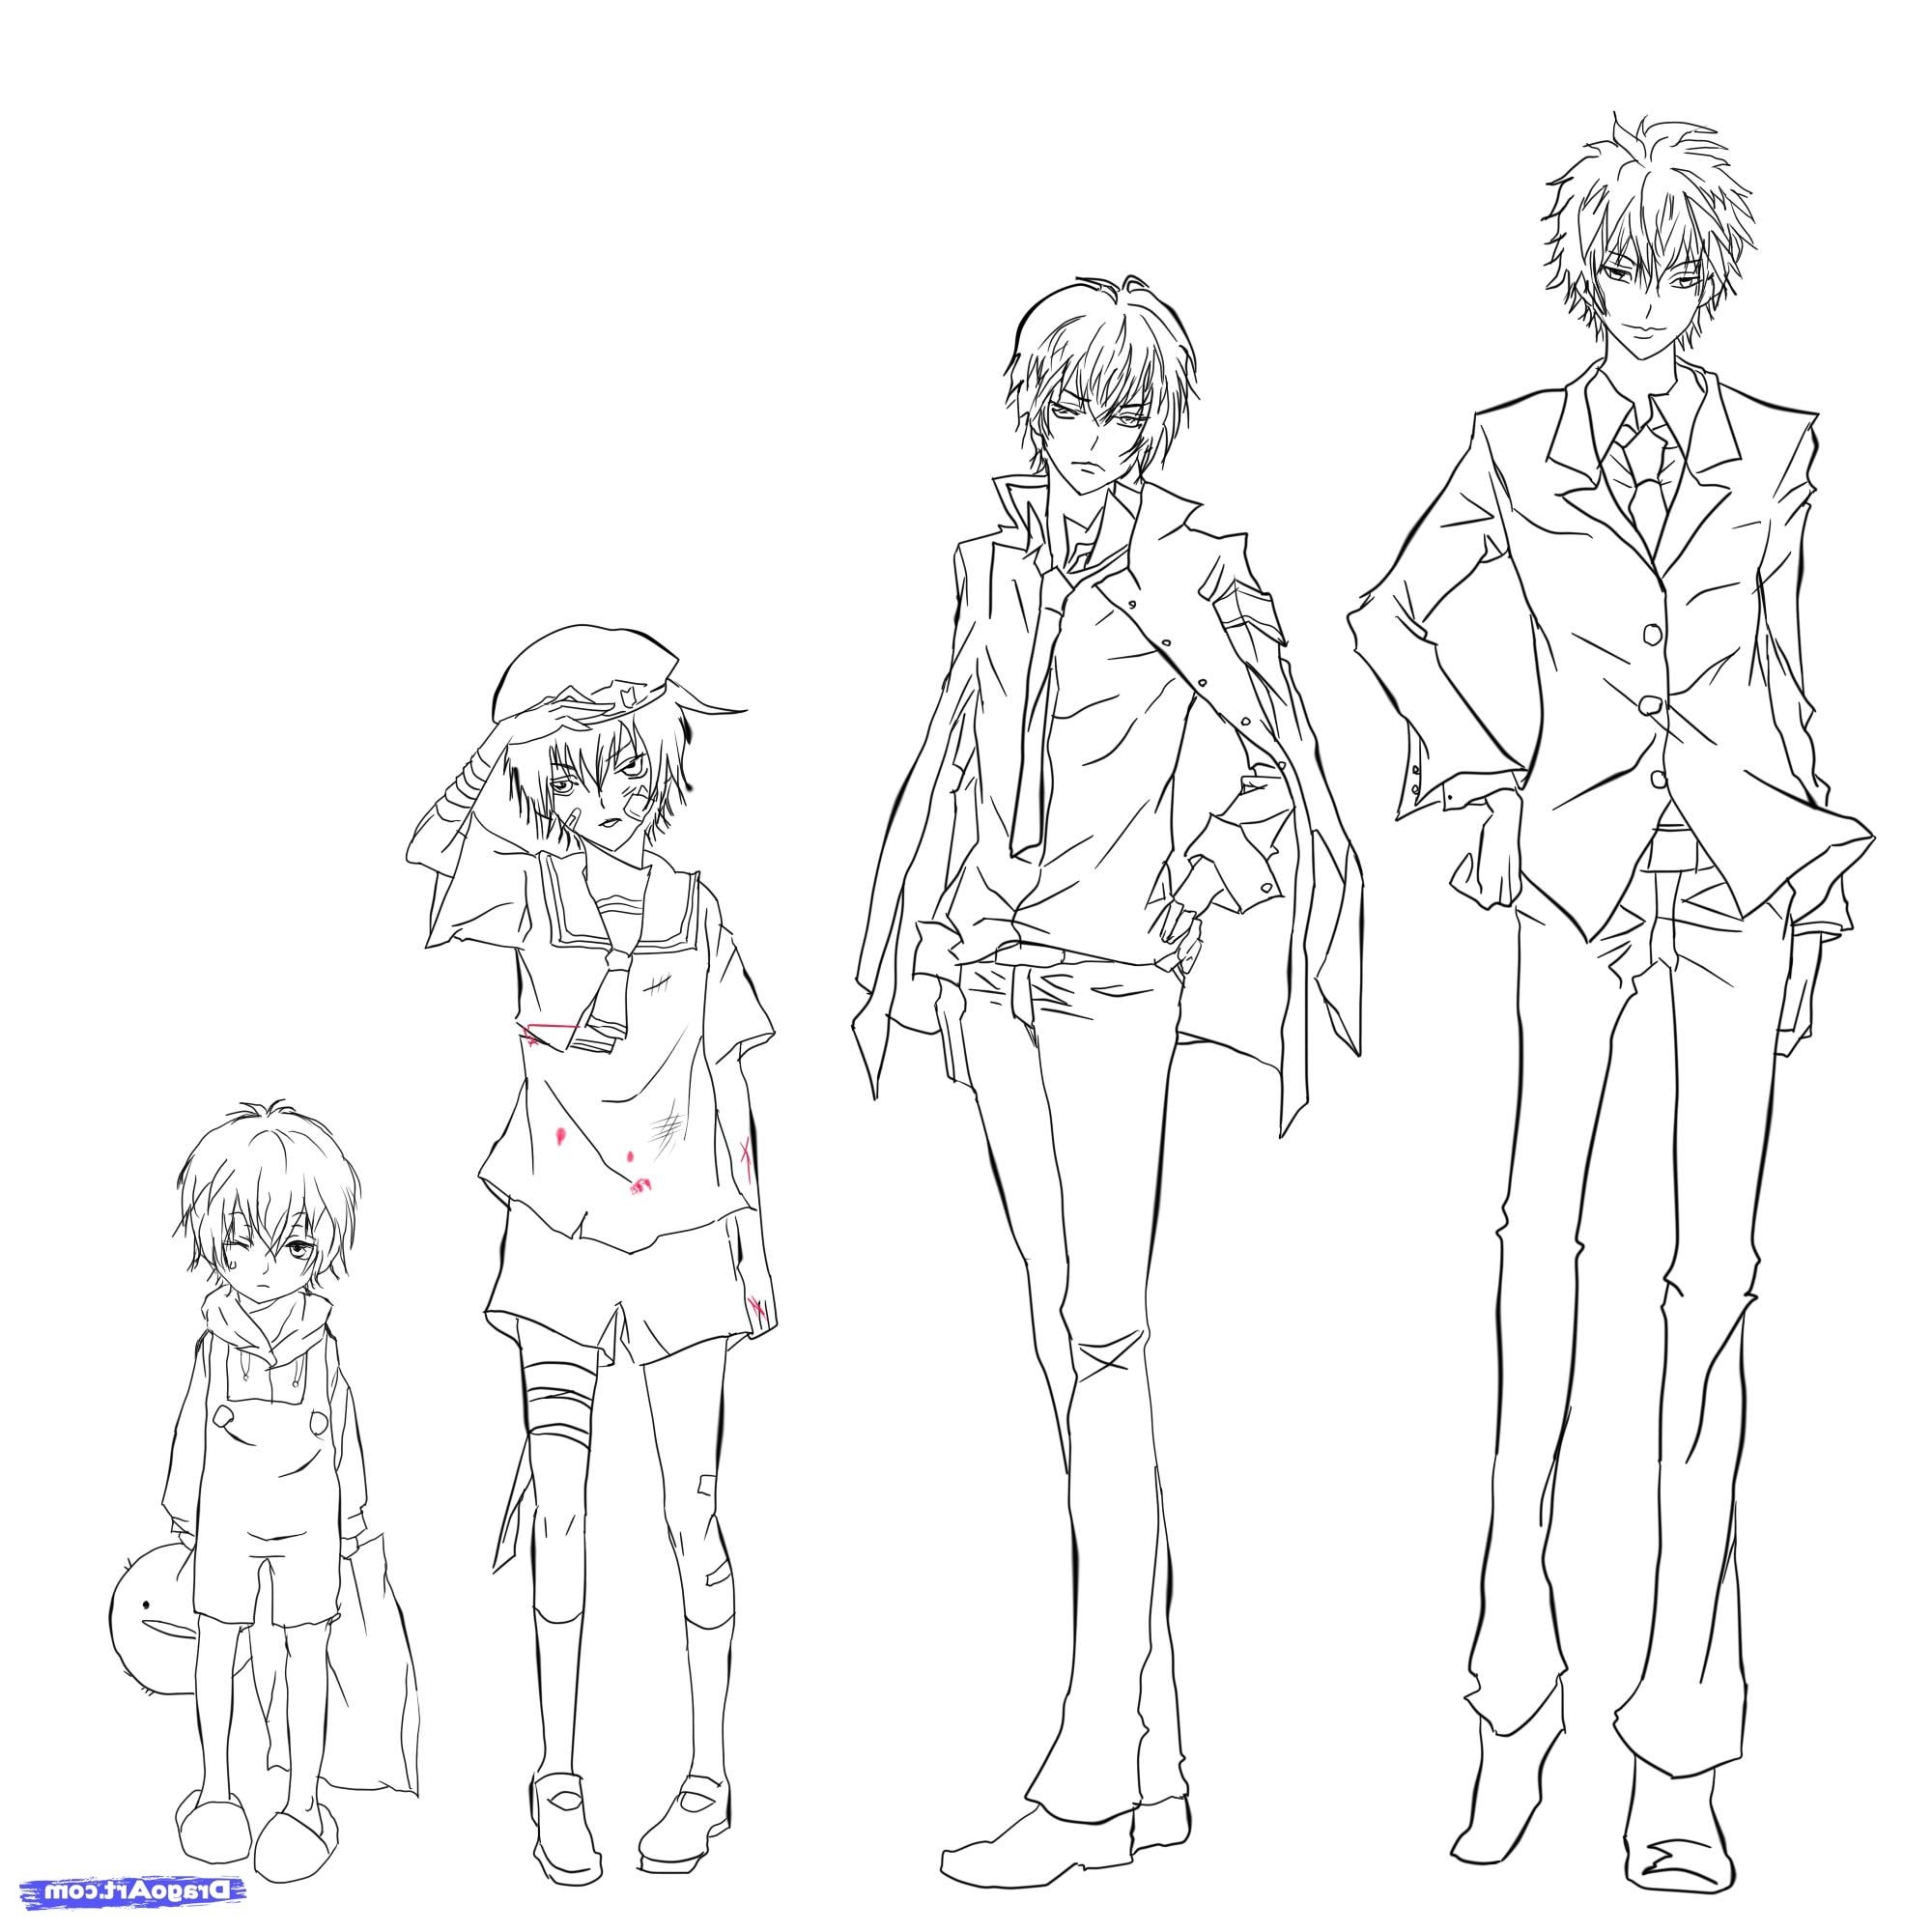 2000x2000 Pencil Drawn Anime Characters Body Outline Best Body Reference